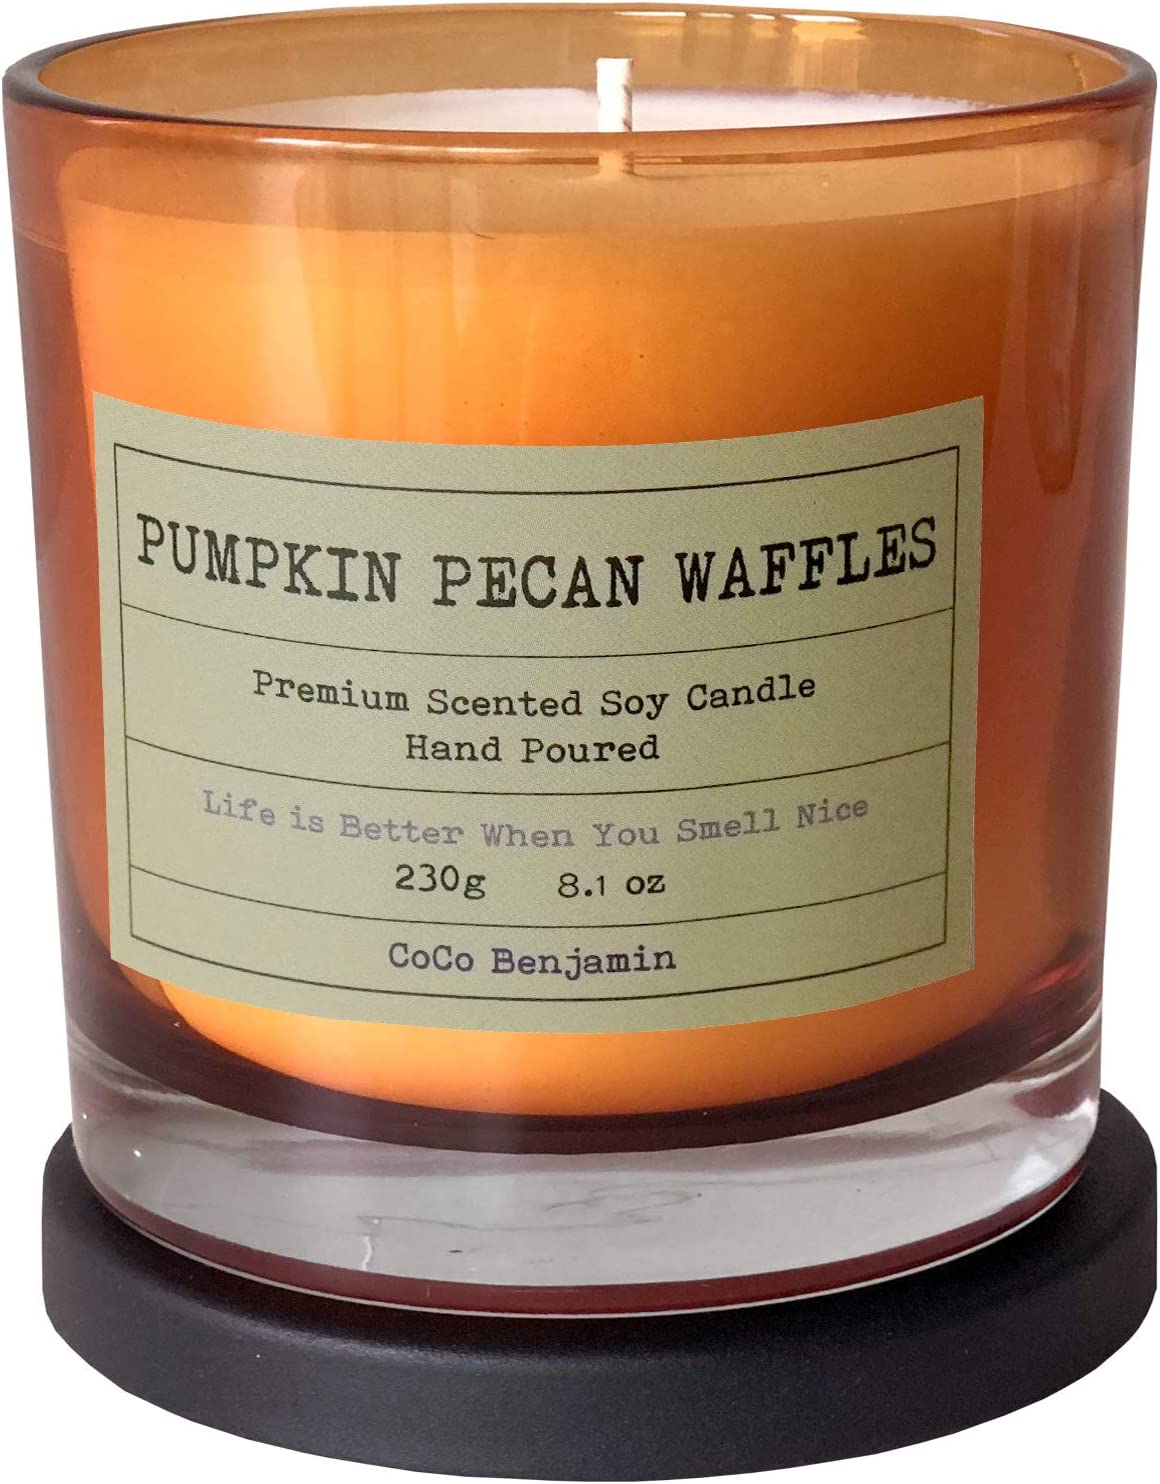 Soy Candle, Highly Scented, Hand Poured, 8.1 oz (Pumpkin Pecan Waffles)